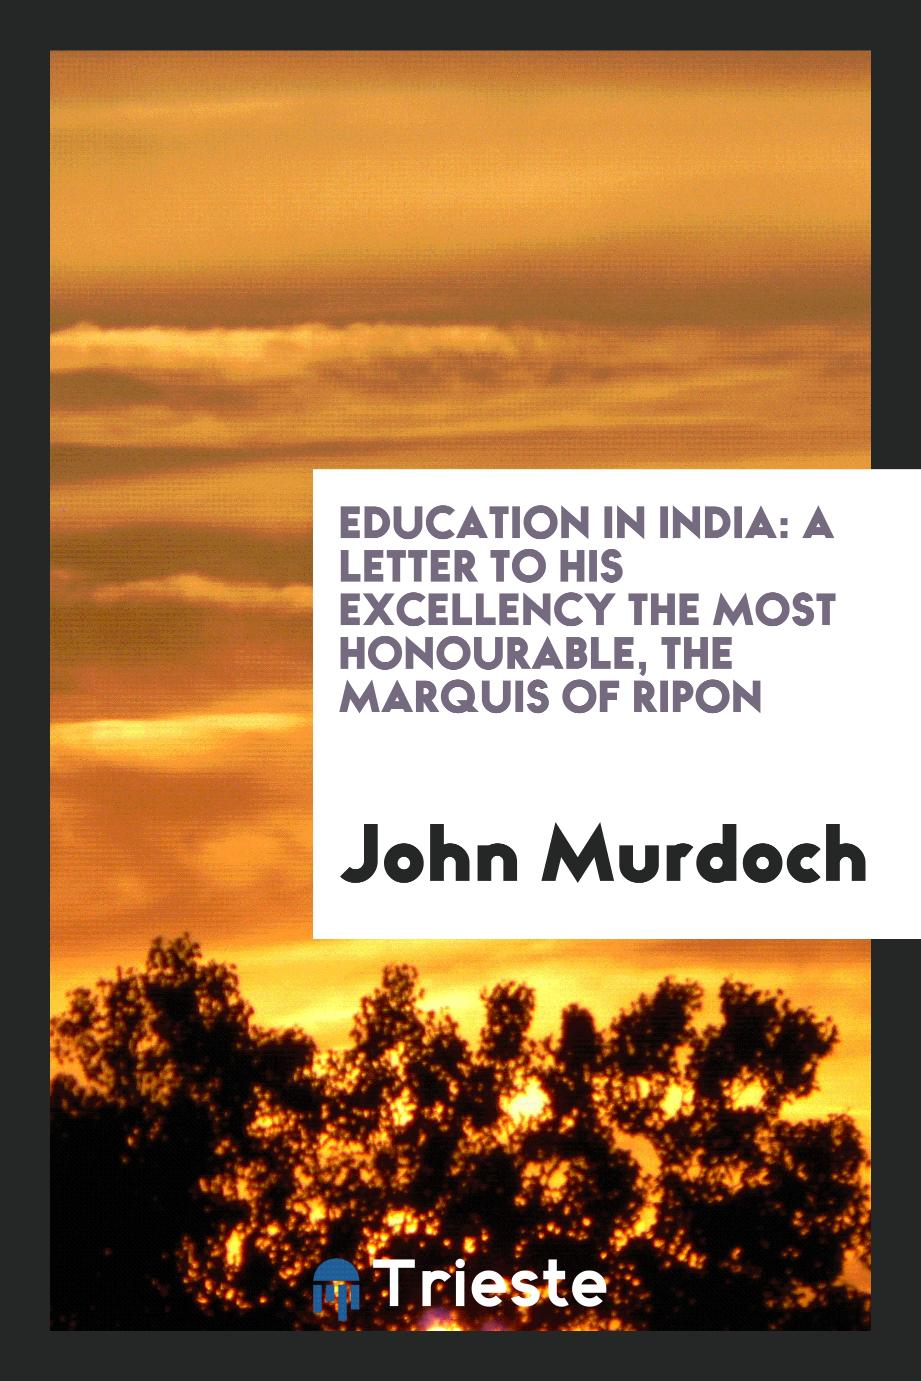 Education in India: A Letter to His Excellency the Most Honourable, the Marquis of Ripon